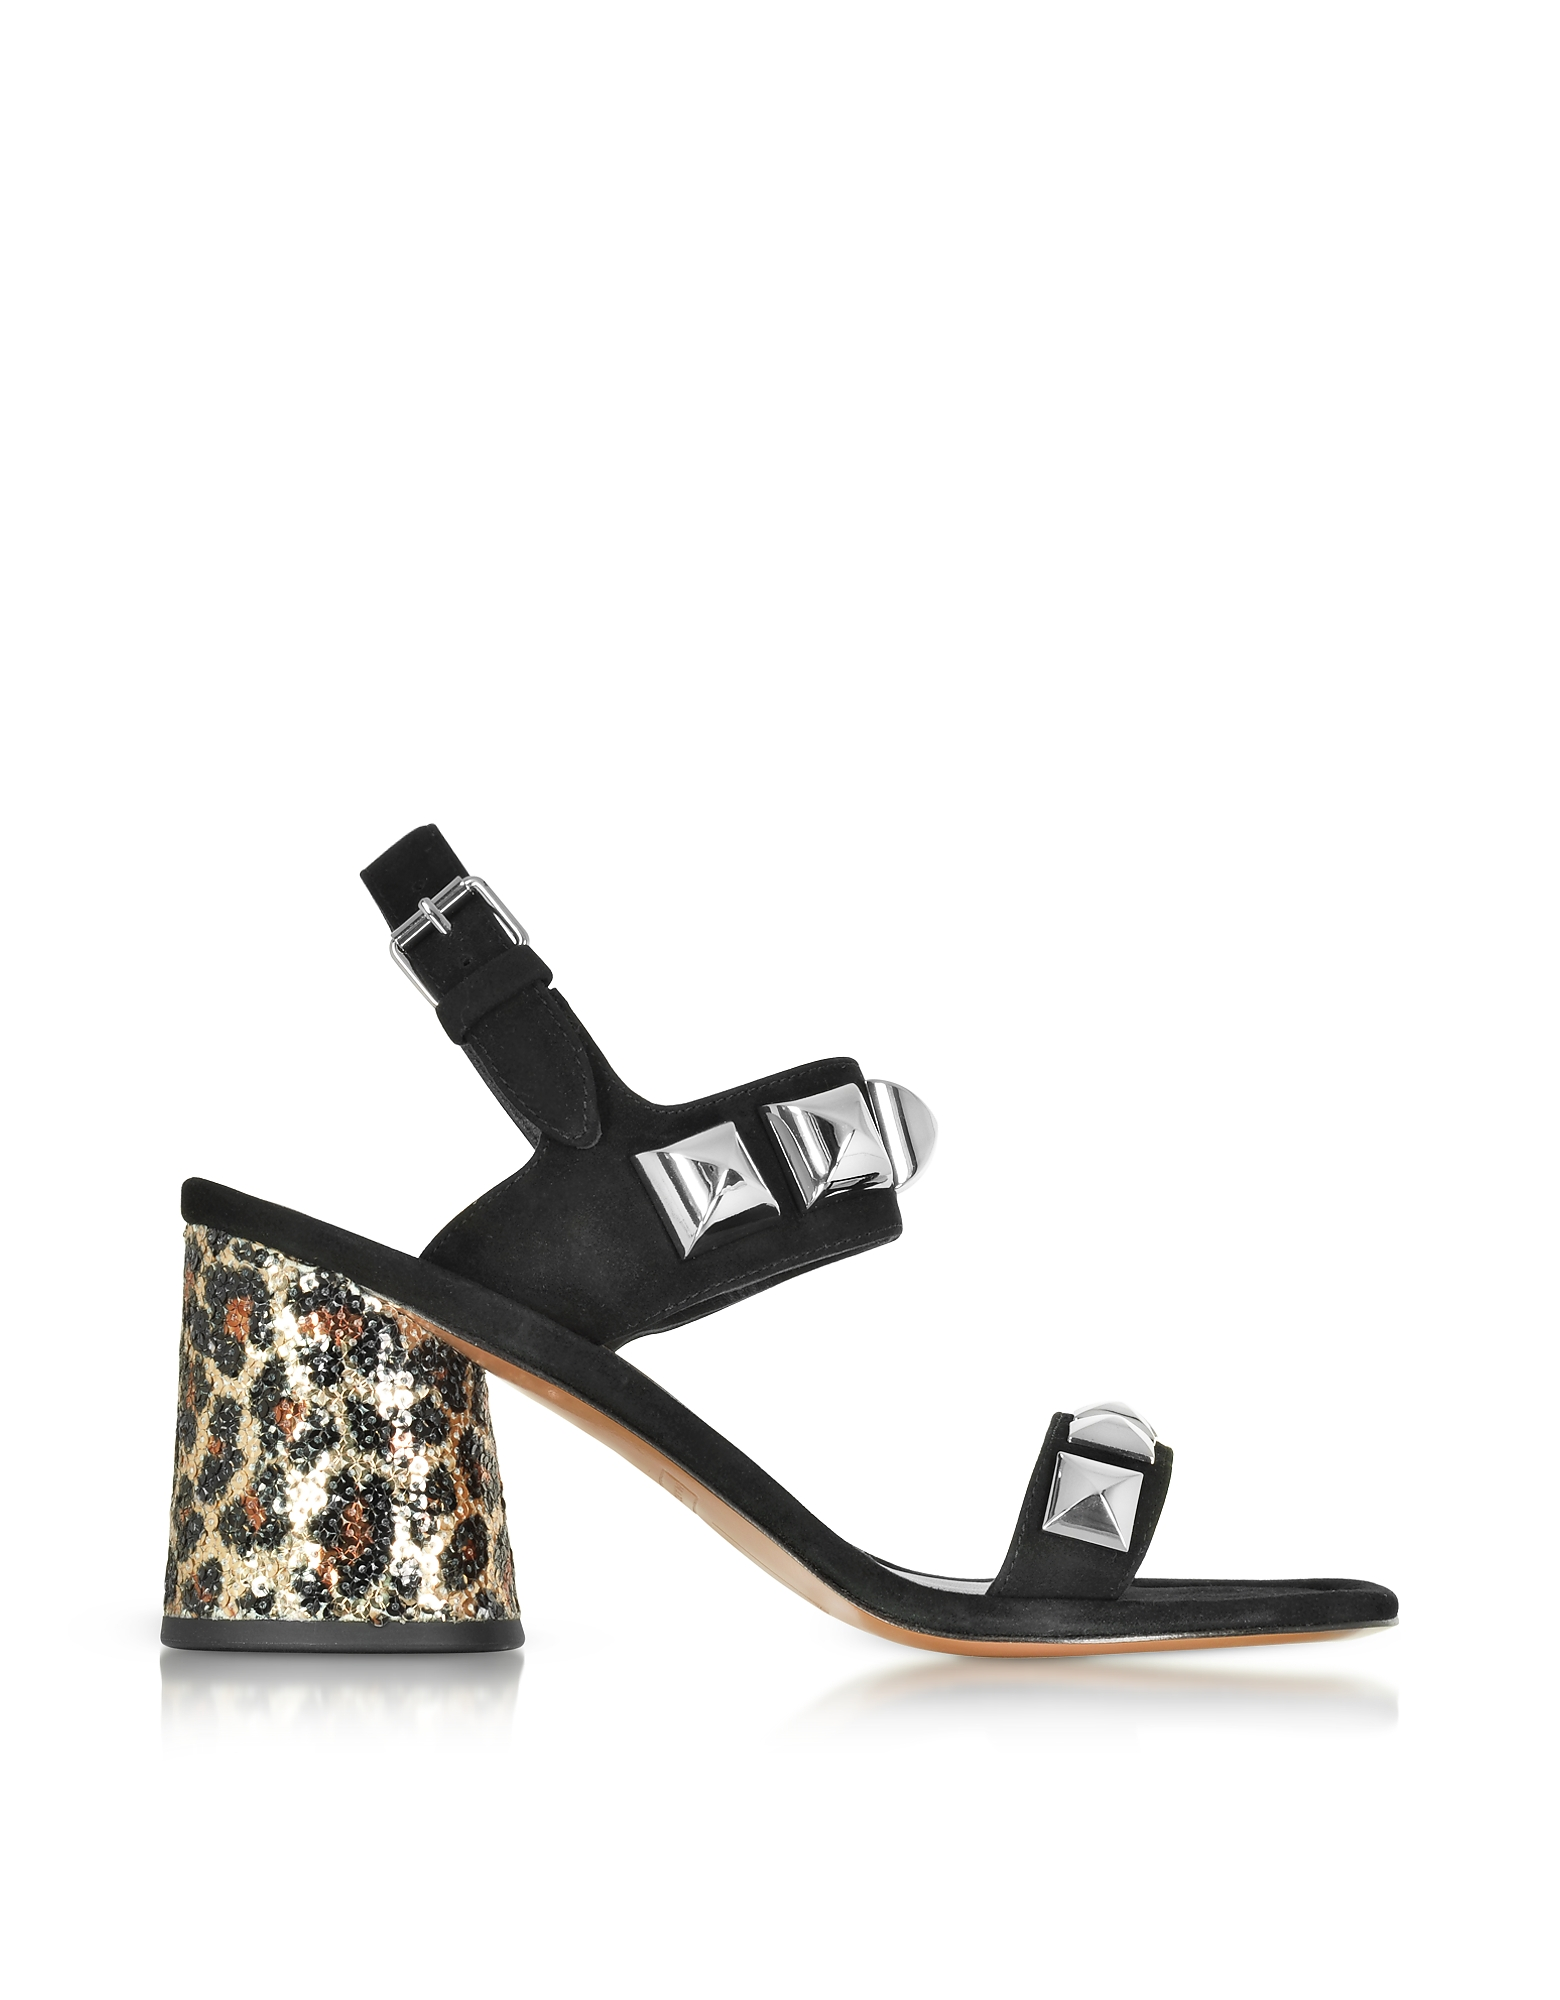 Marc Jacobs Shoes, Emilie Black Leather Ankle Strap Sandal w/Studs & Animal Print Heel